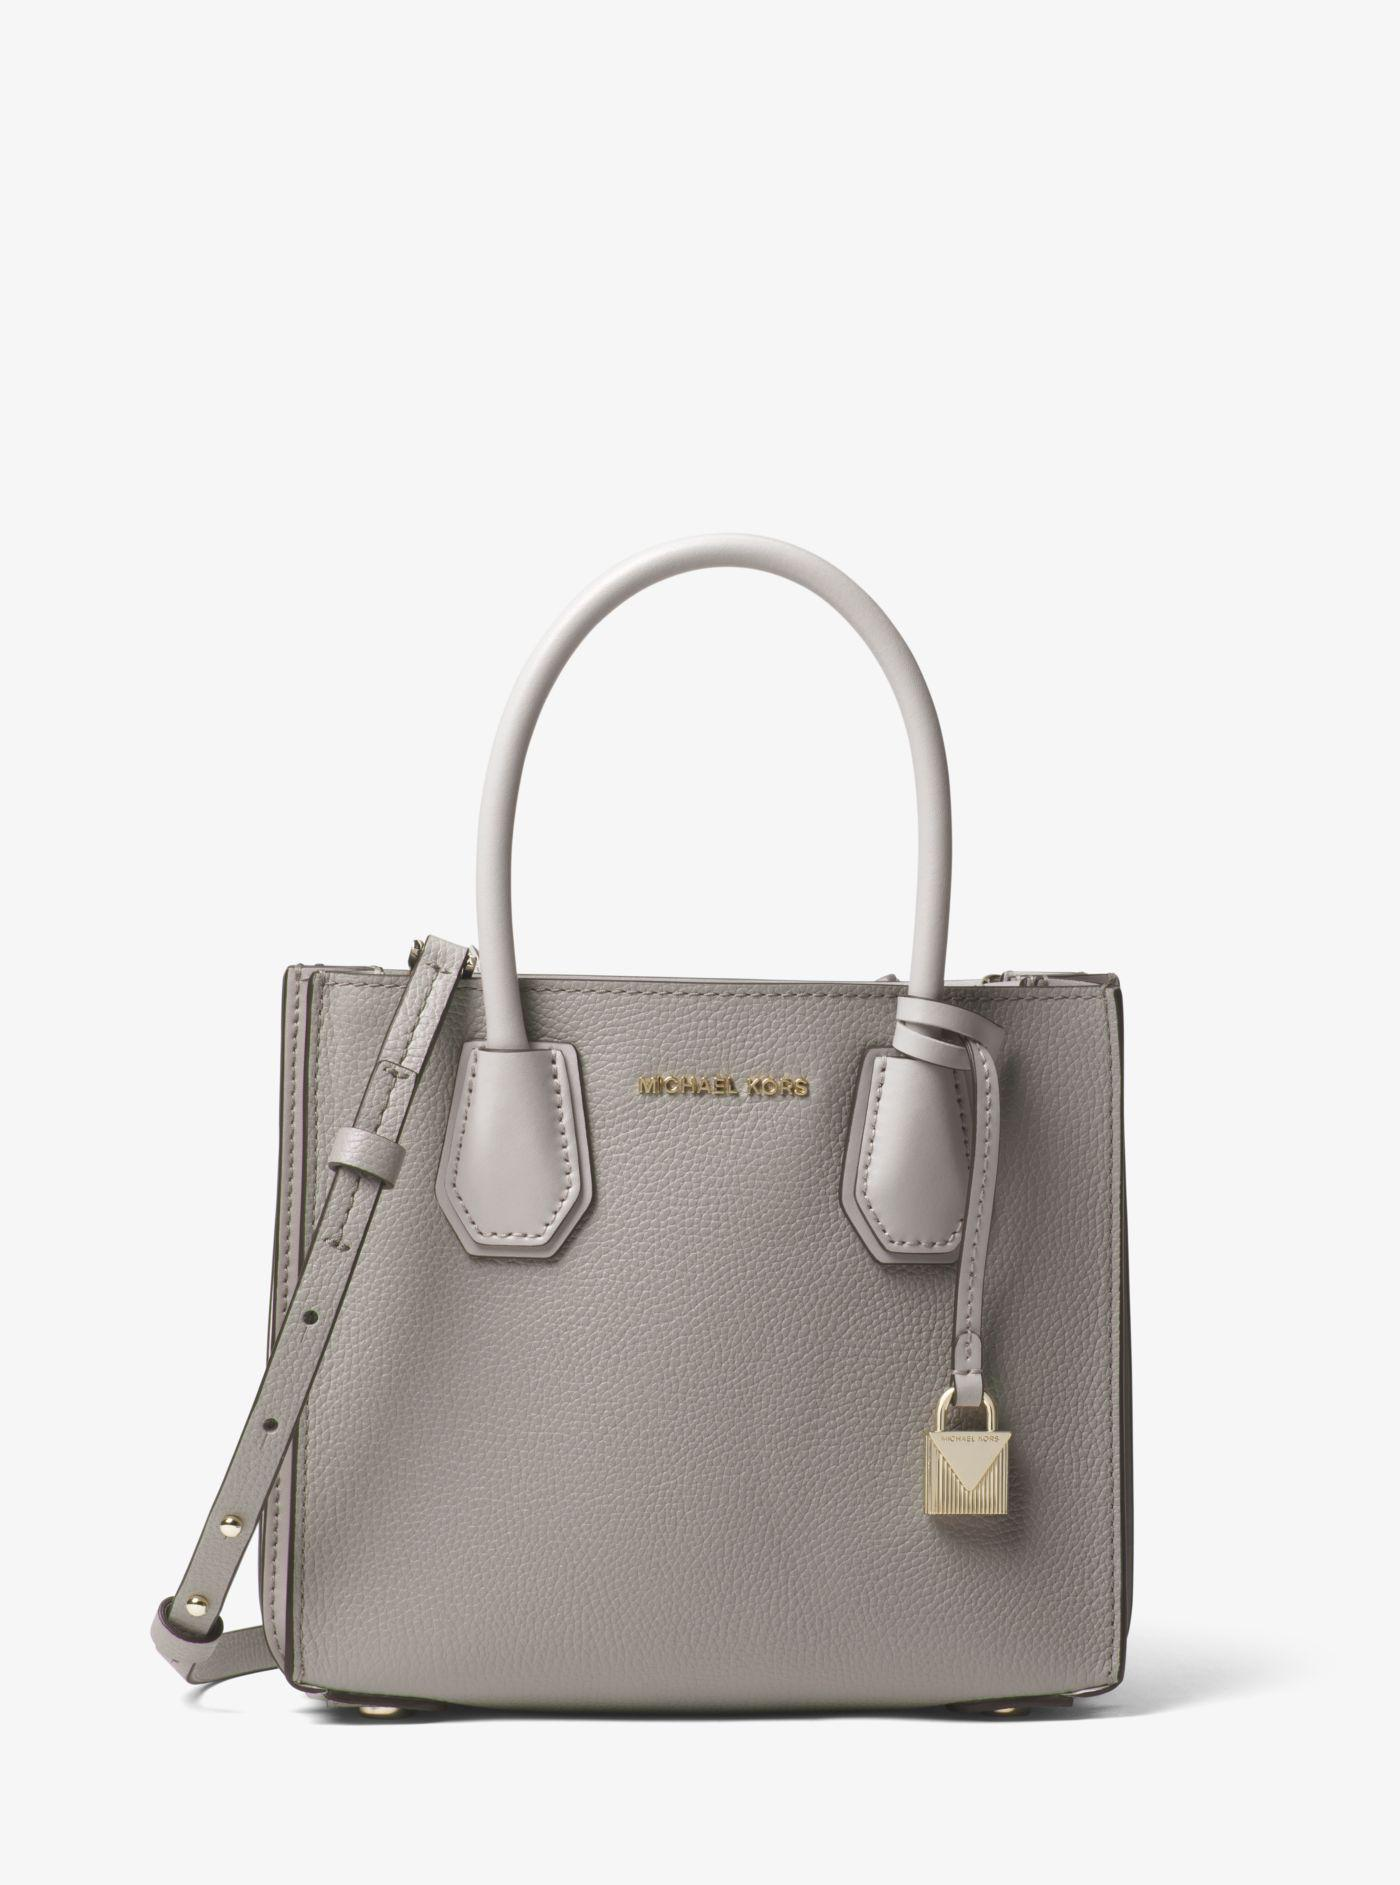 cadd8c29d4c2 Lyst - Michael Kors Mercer Pebbled Leather Accordion Crossbody in Gray